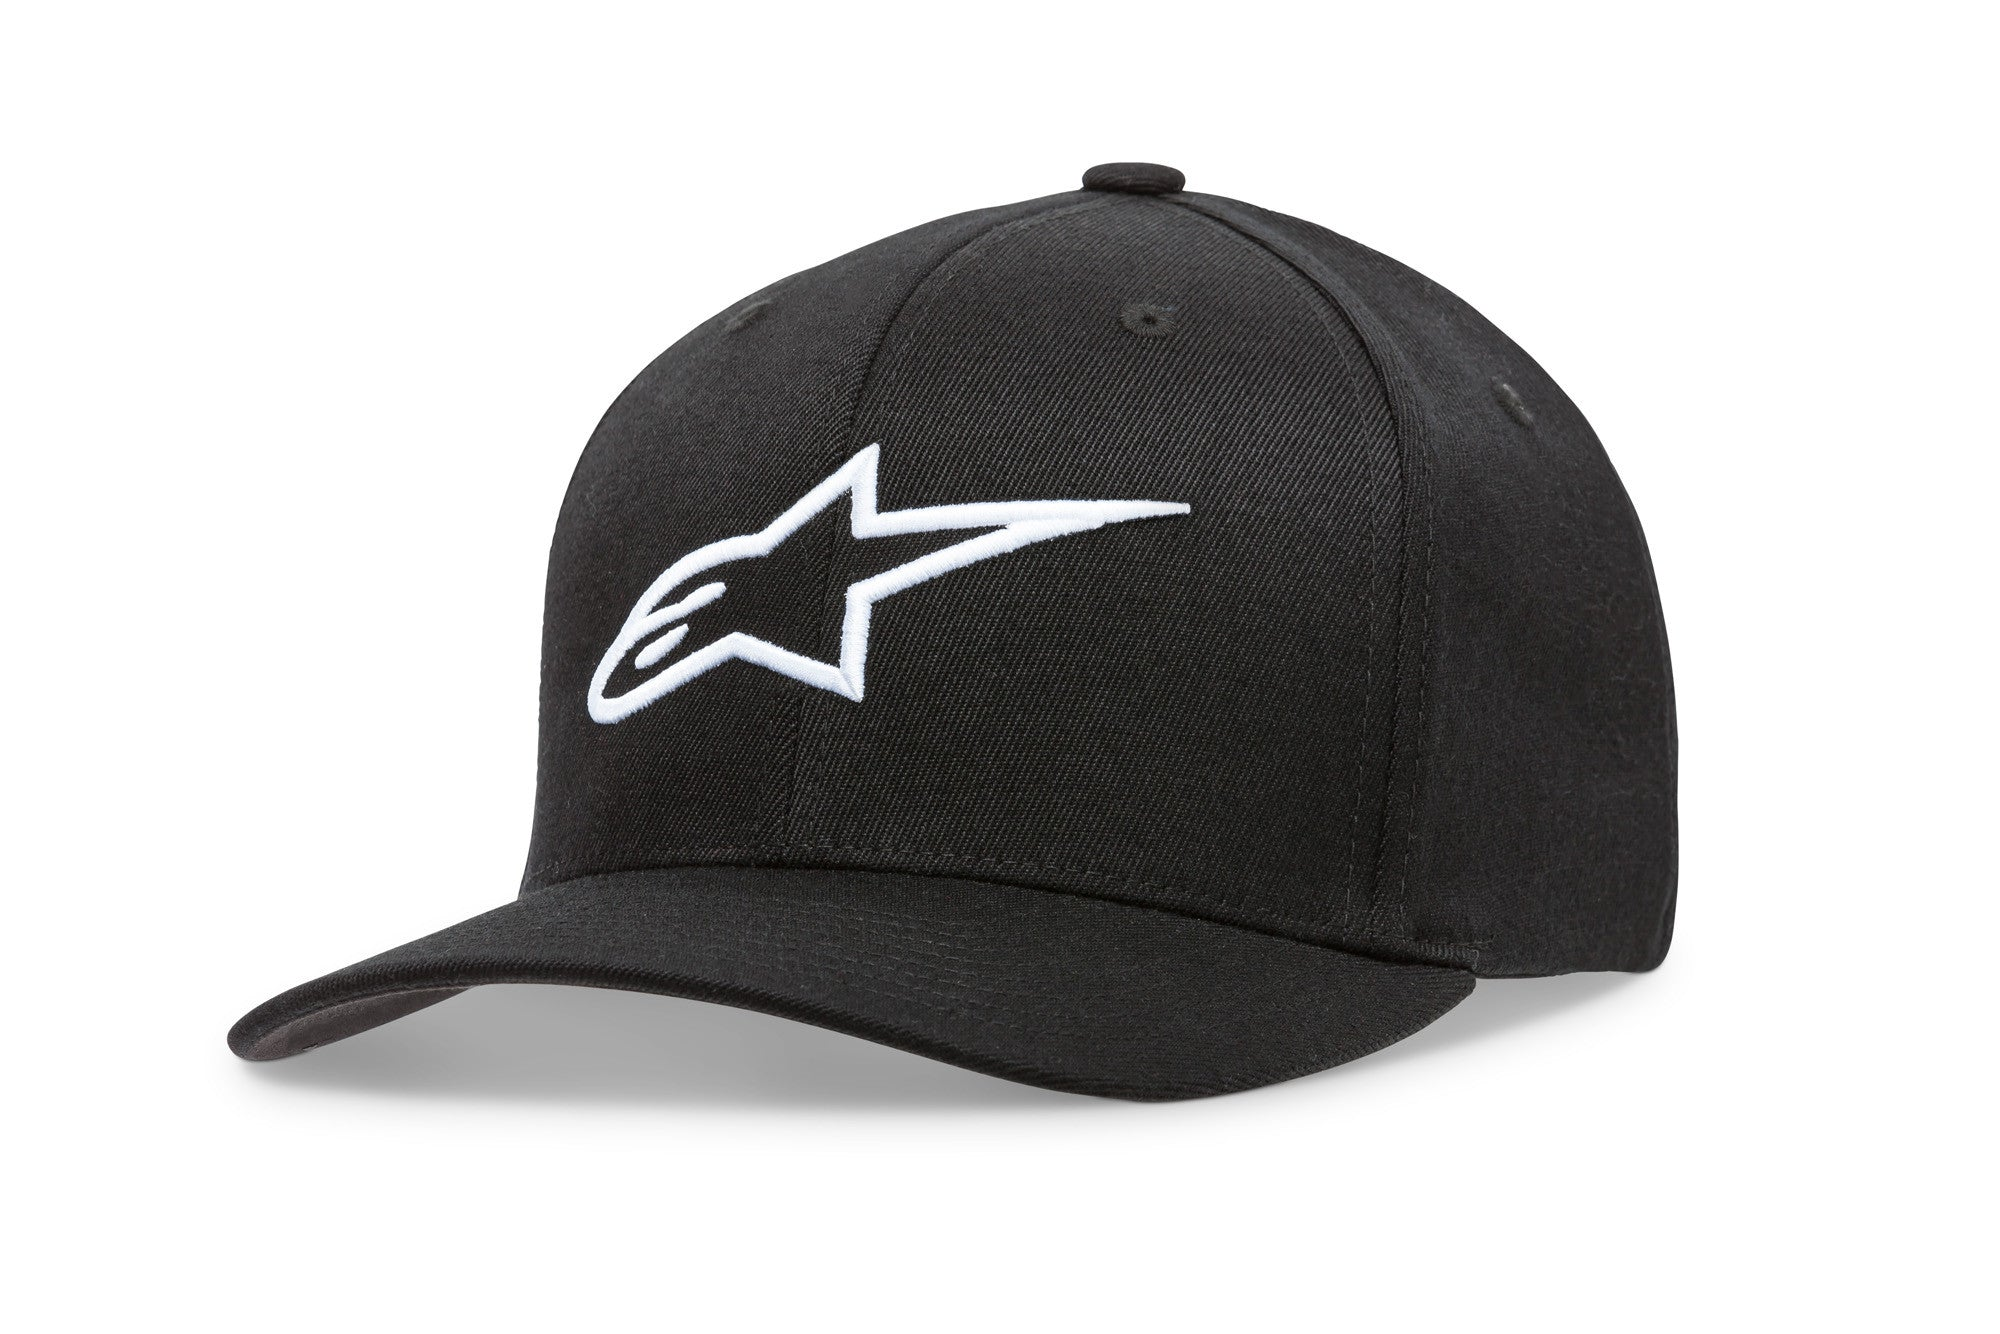 Alpinestars WOMENS AGELESS HAT BLACK/WHITE 1W38-81100-1020